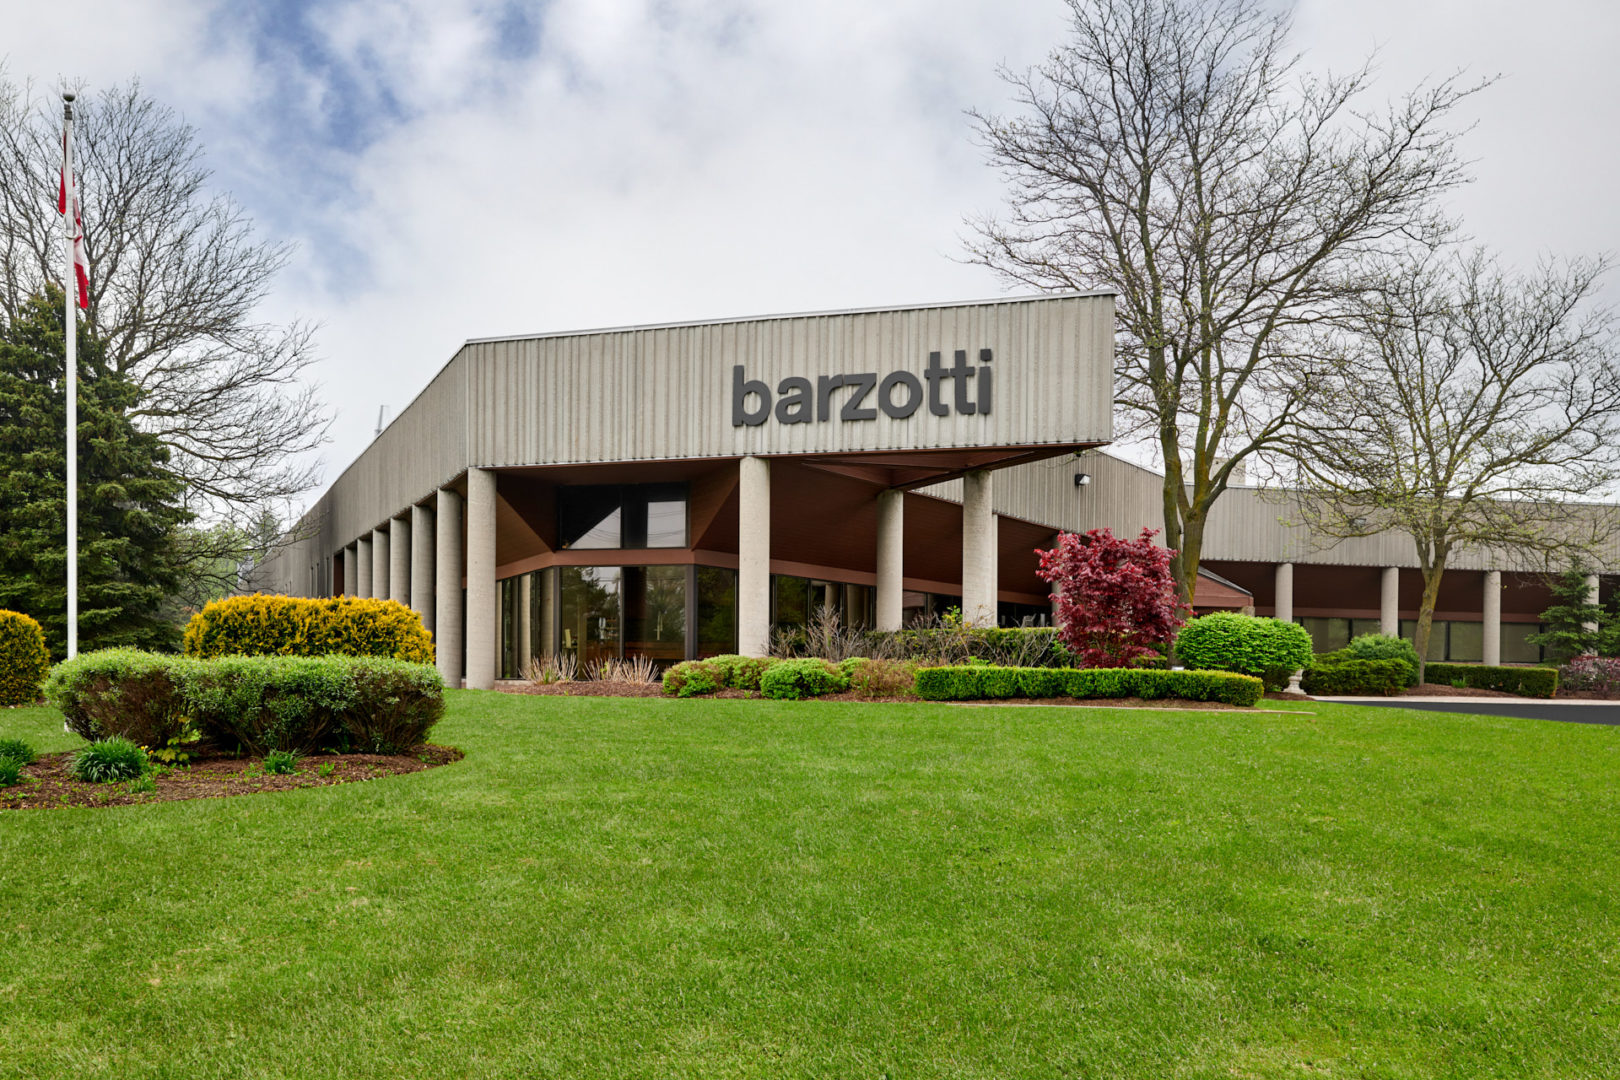 Architecture | Exterior Photography of Barzotti Woodworking Inc main office in Guelph Ontario by Brandon Marsh Photography